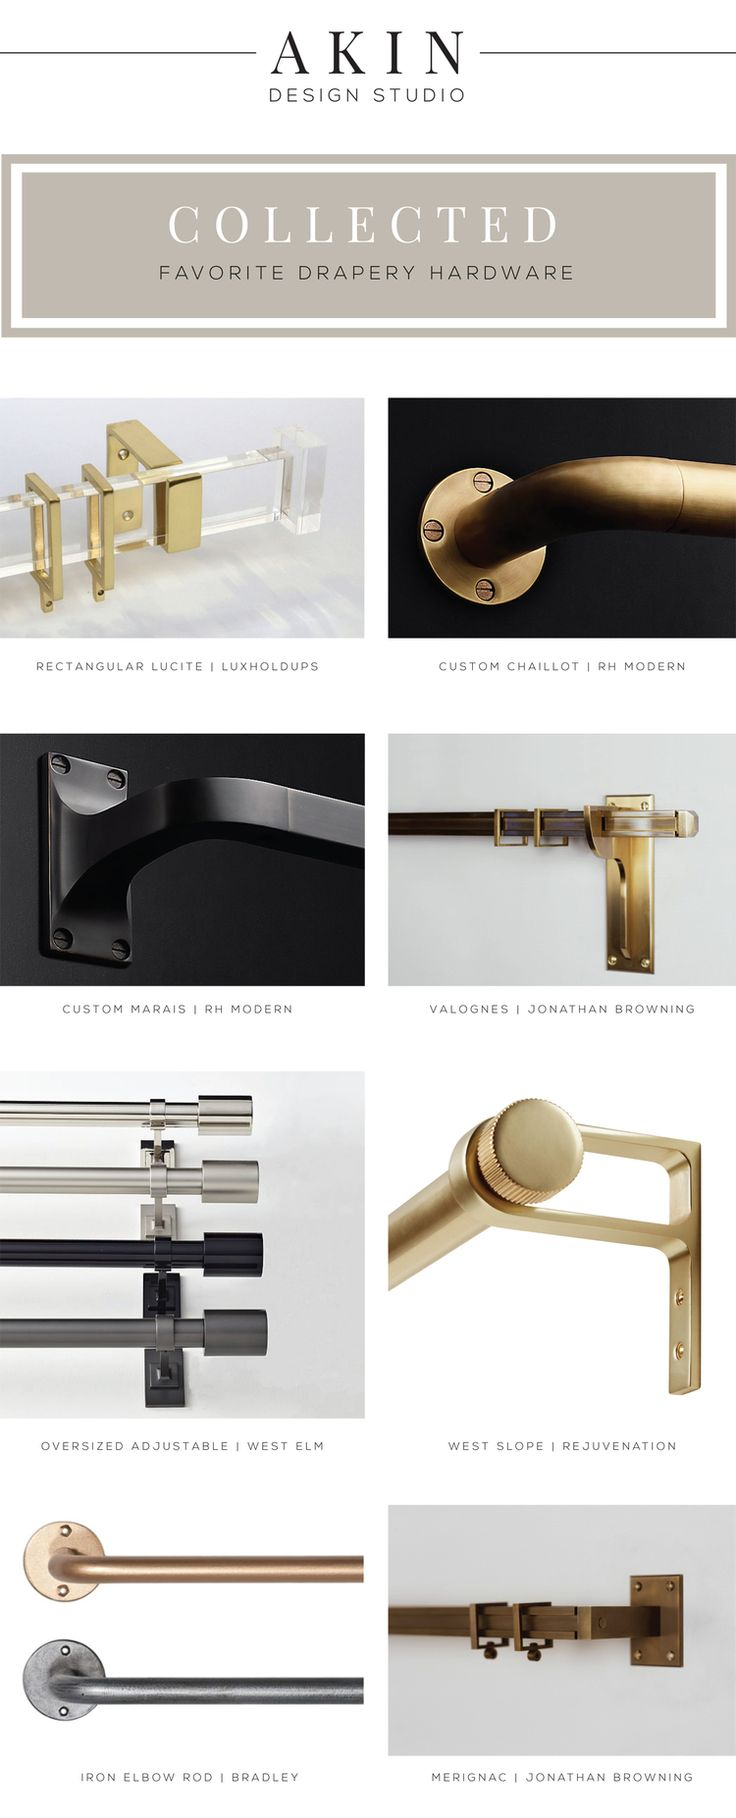 Akin Design Studio's Favorite Drapery Hardware | Modern window hardware